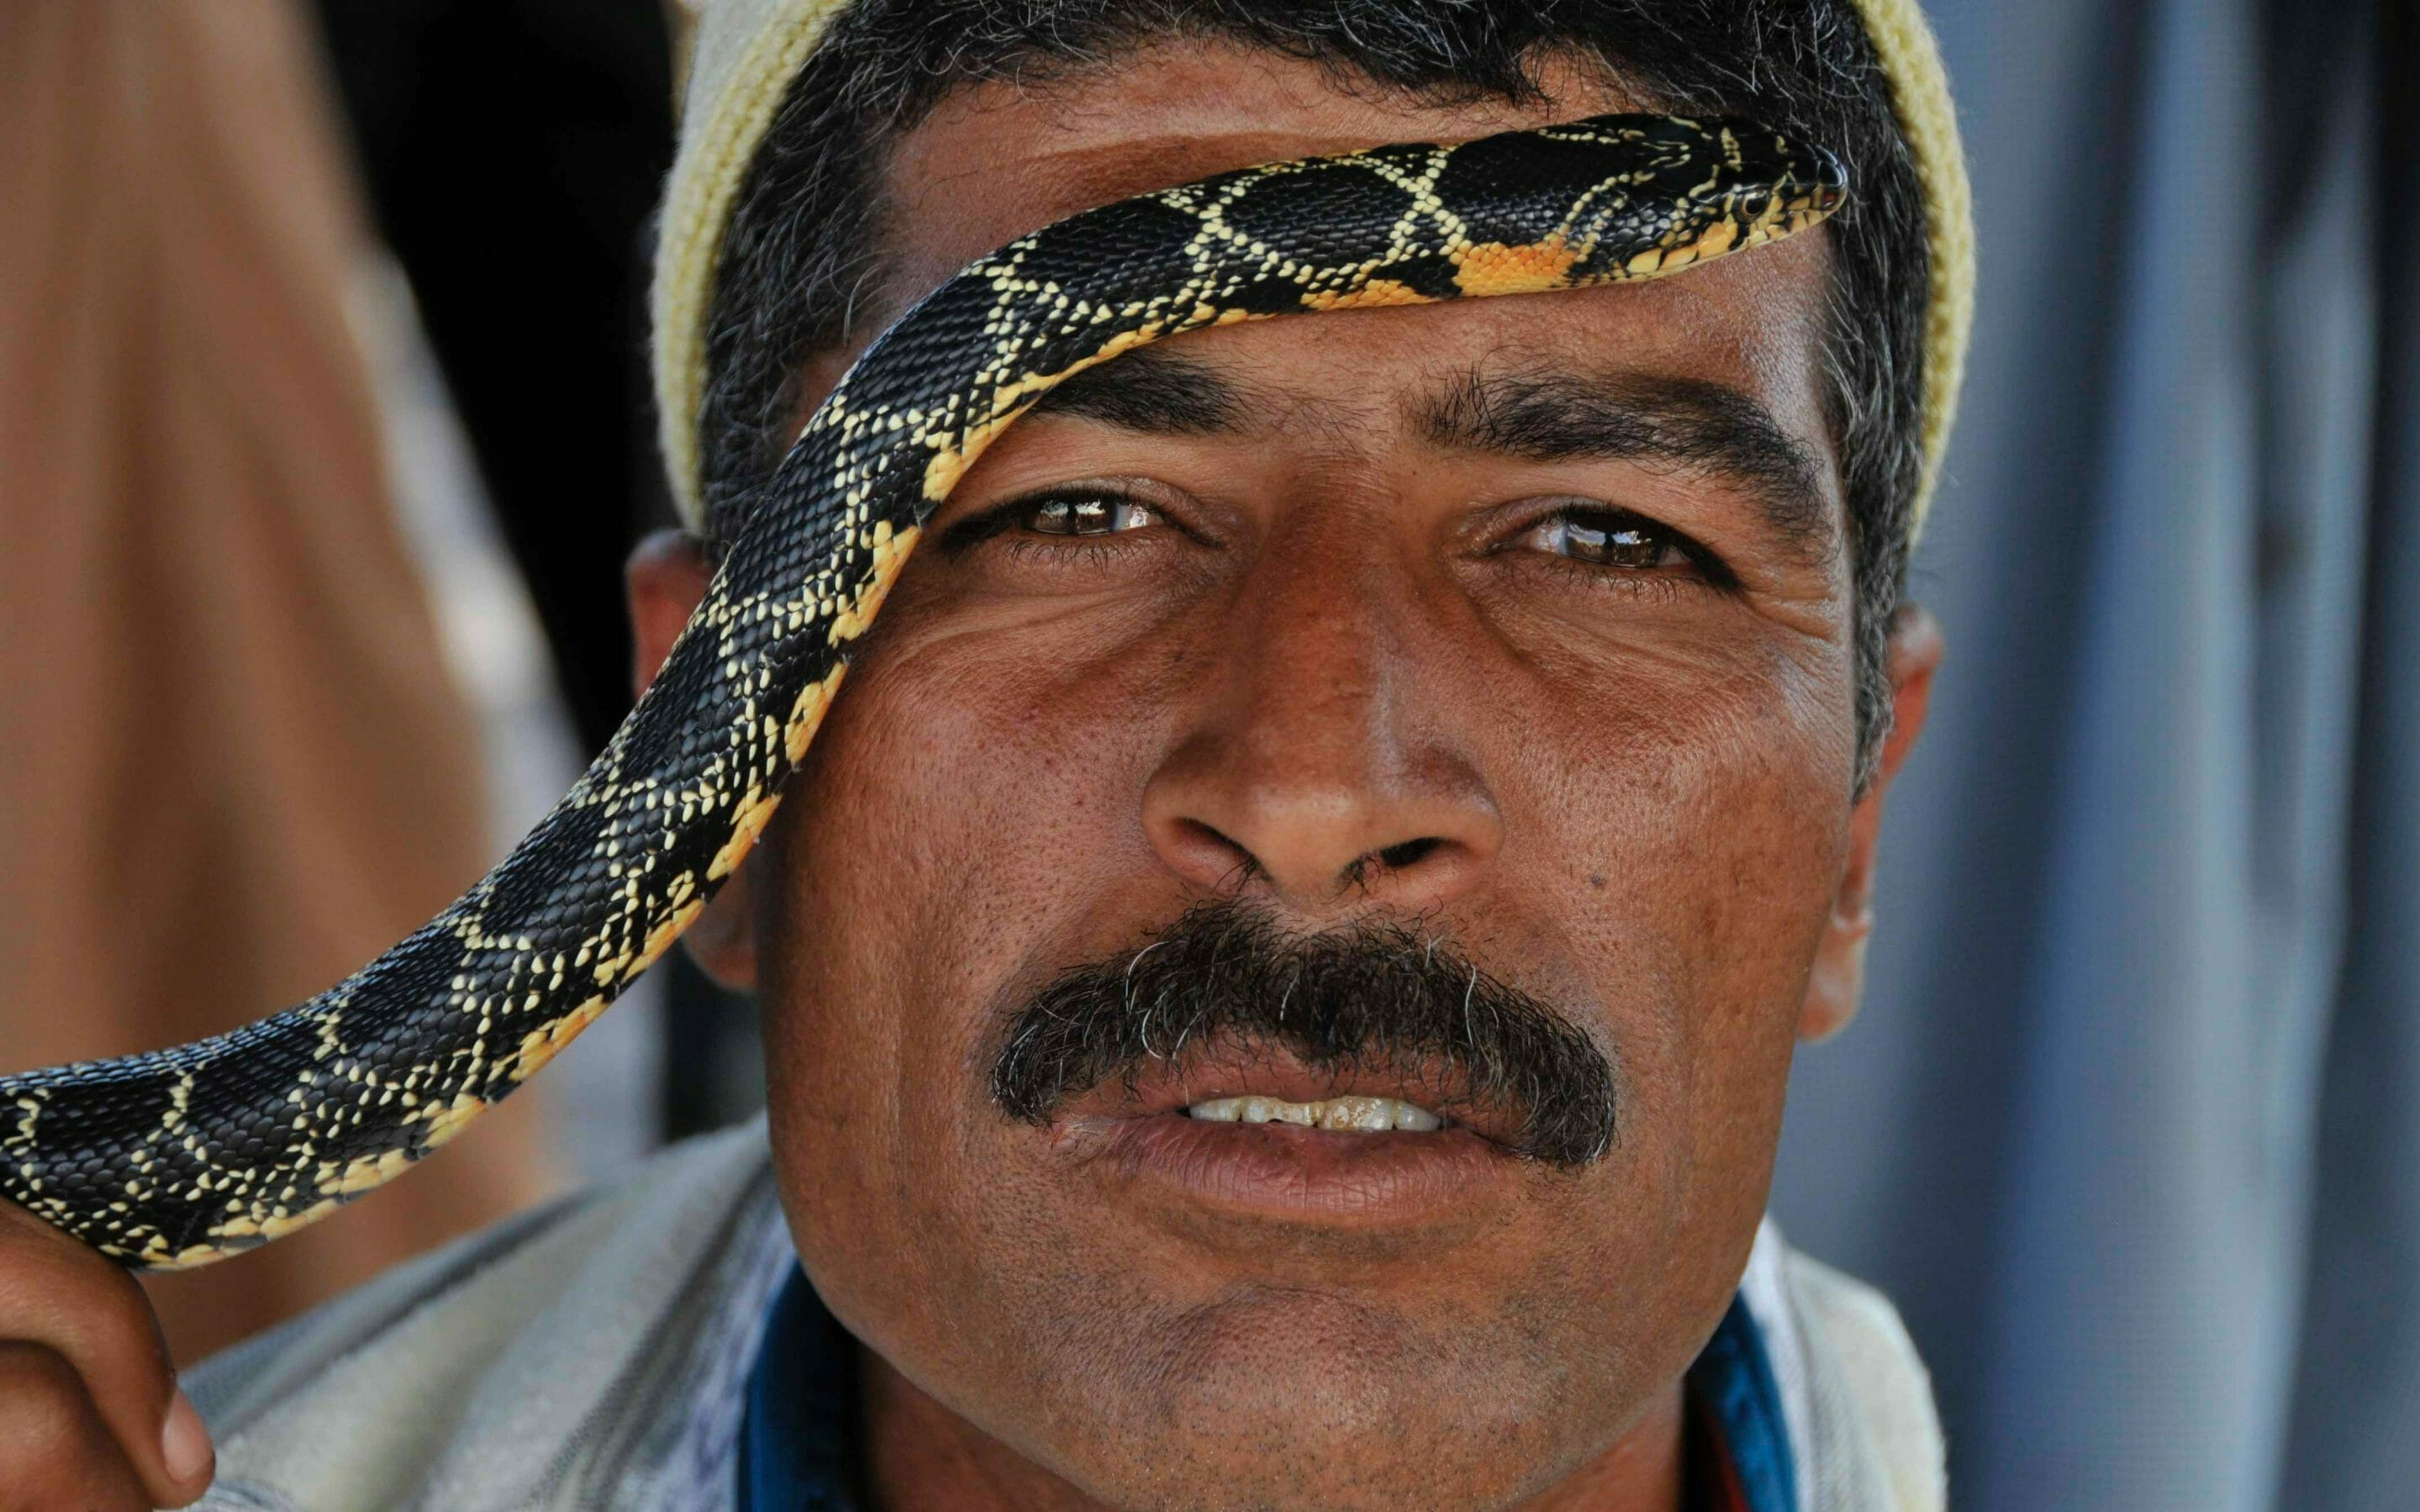 Morroco snake charmer photo tour Terri Gross